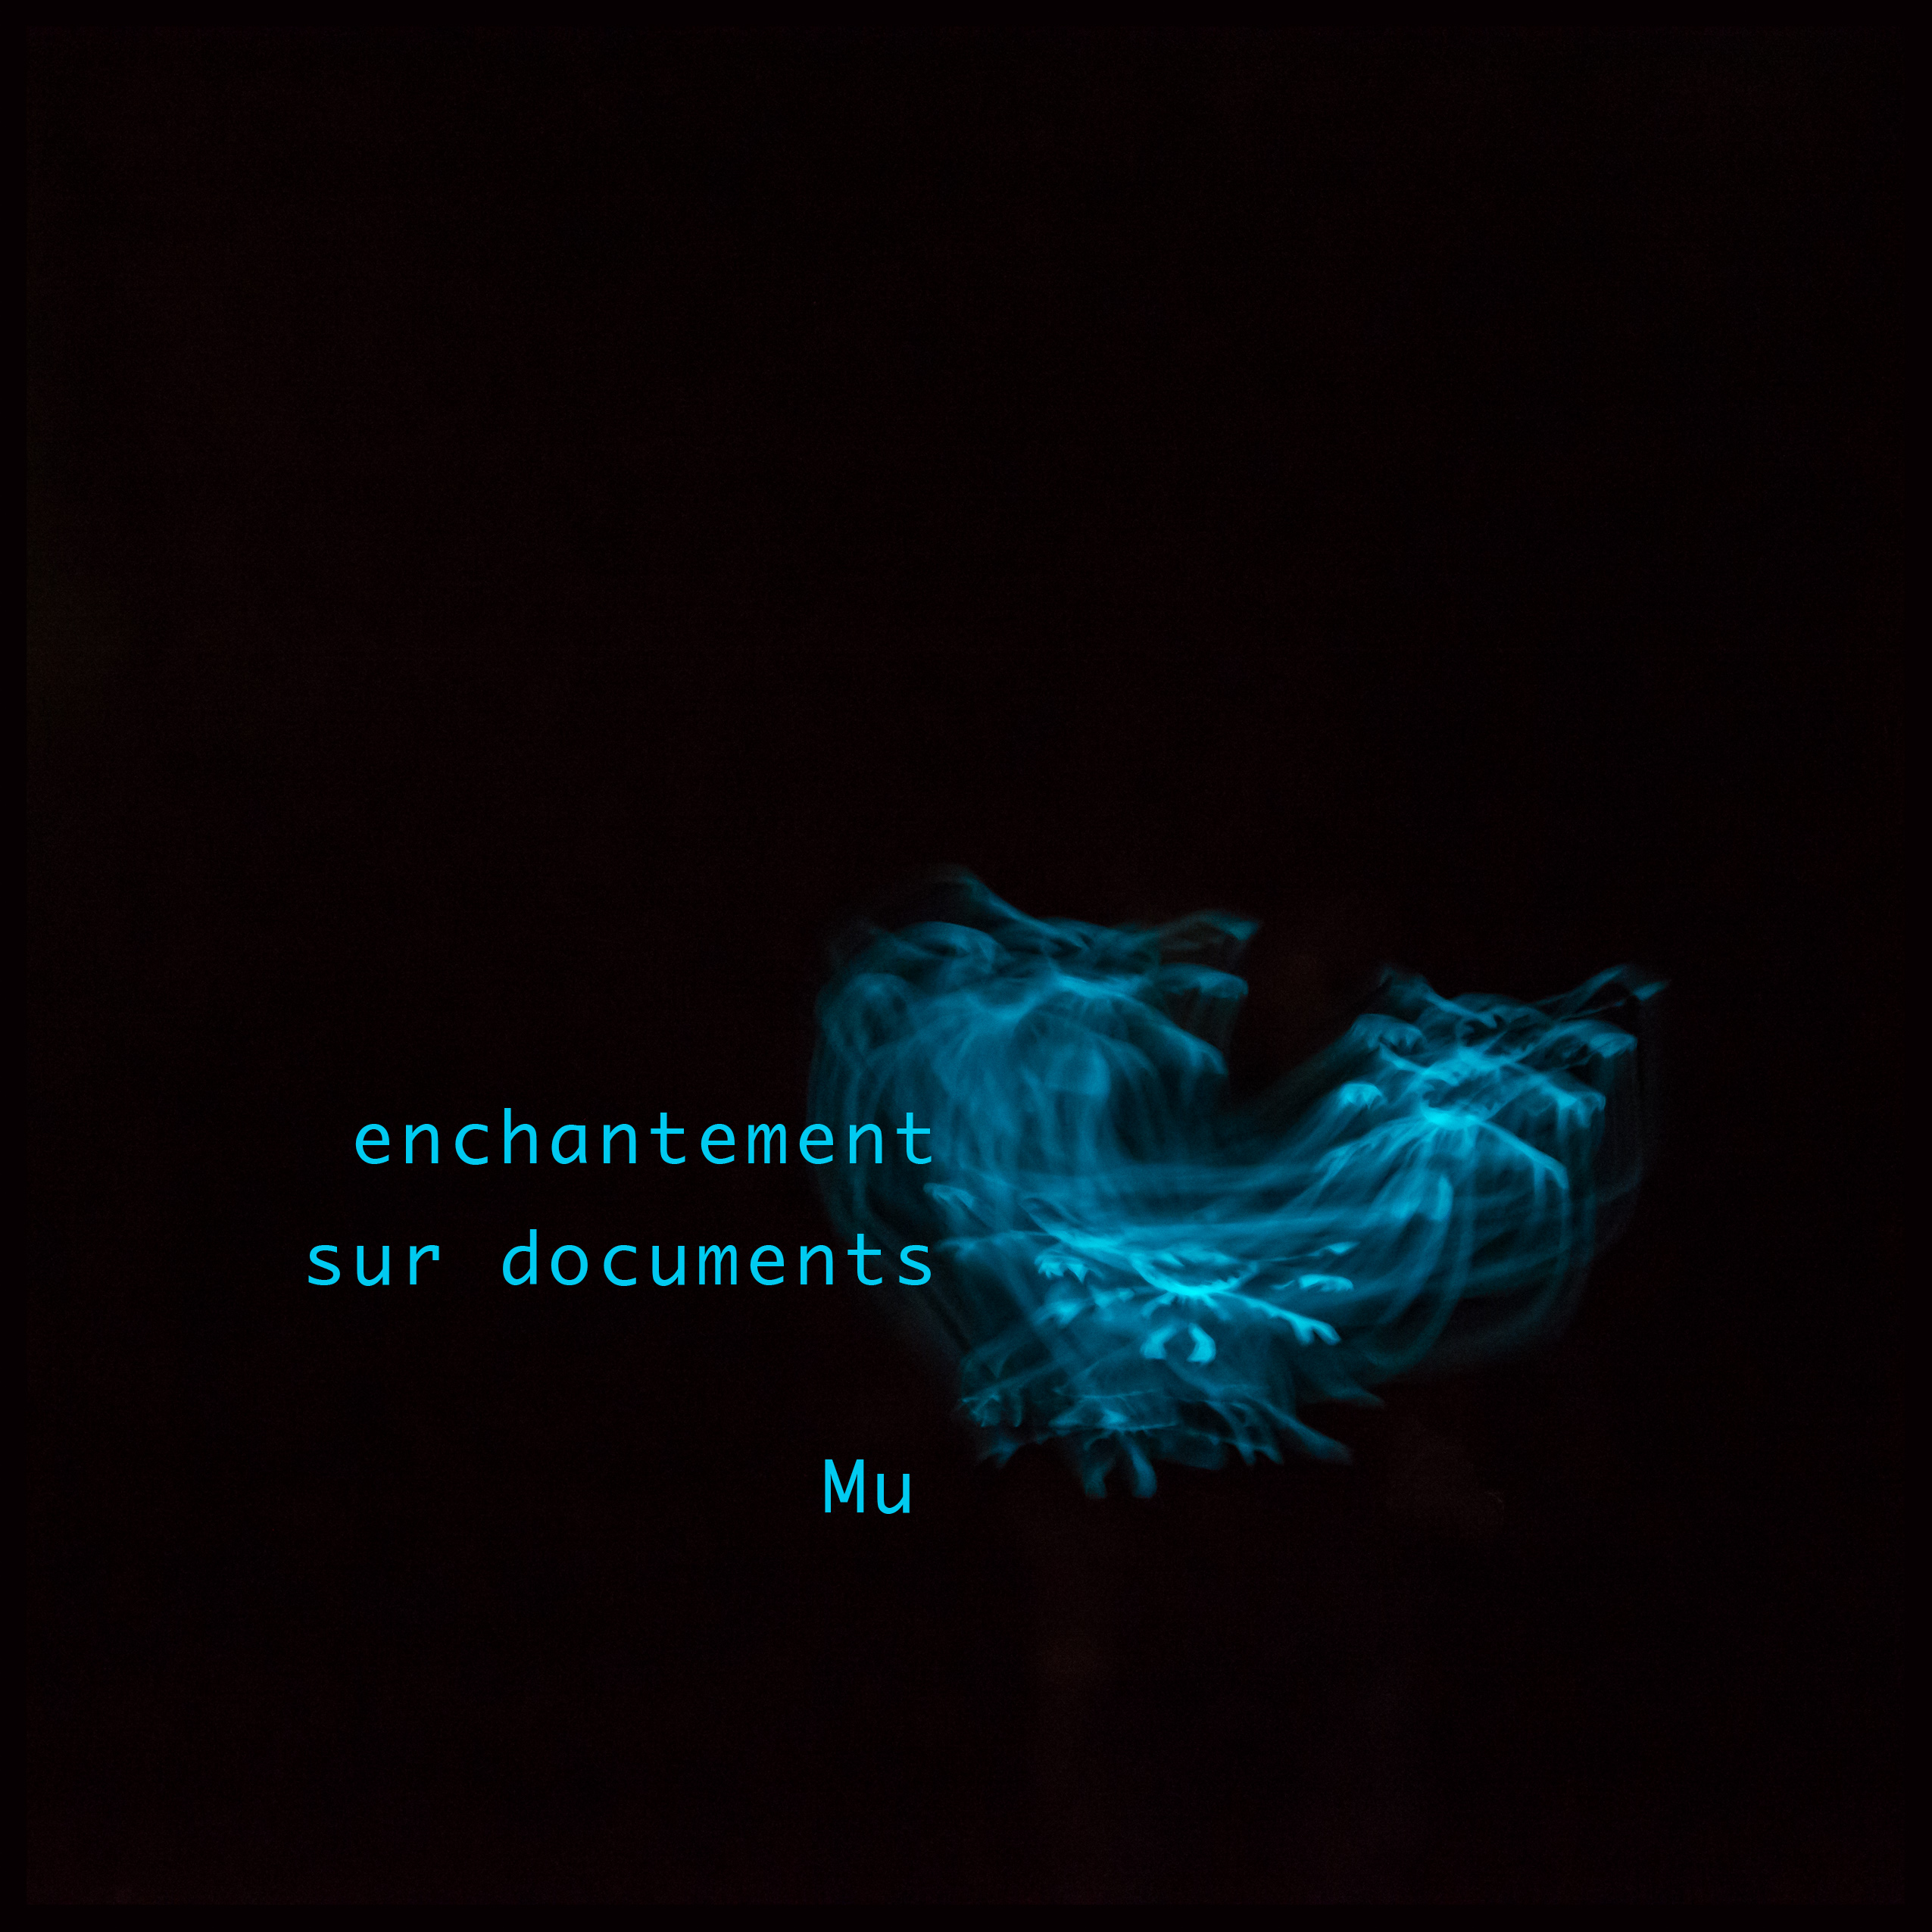 Mu enchantement sur document Art bioluminescent Muriel blondeau